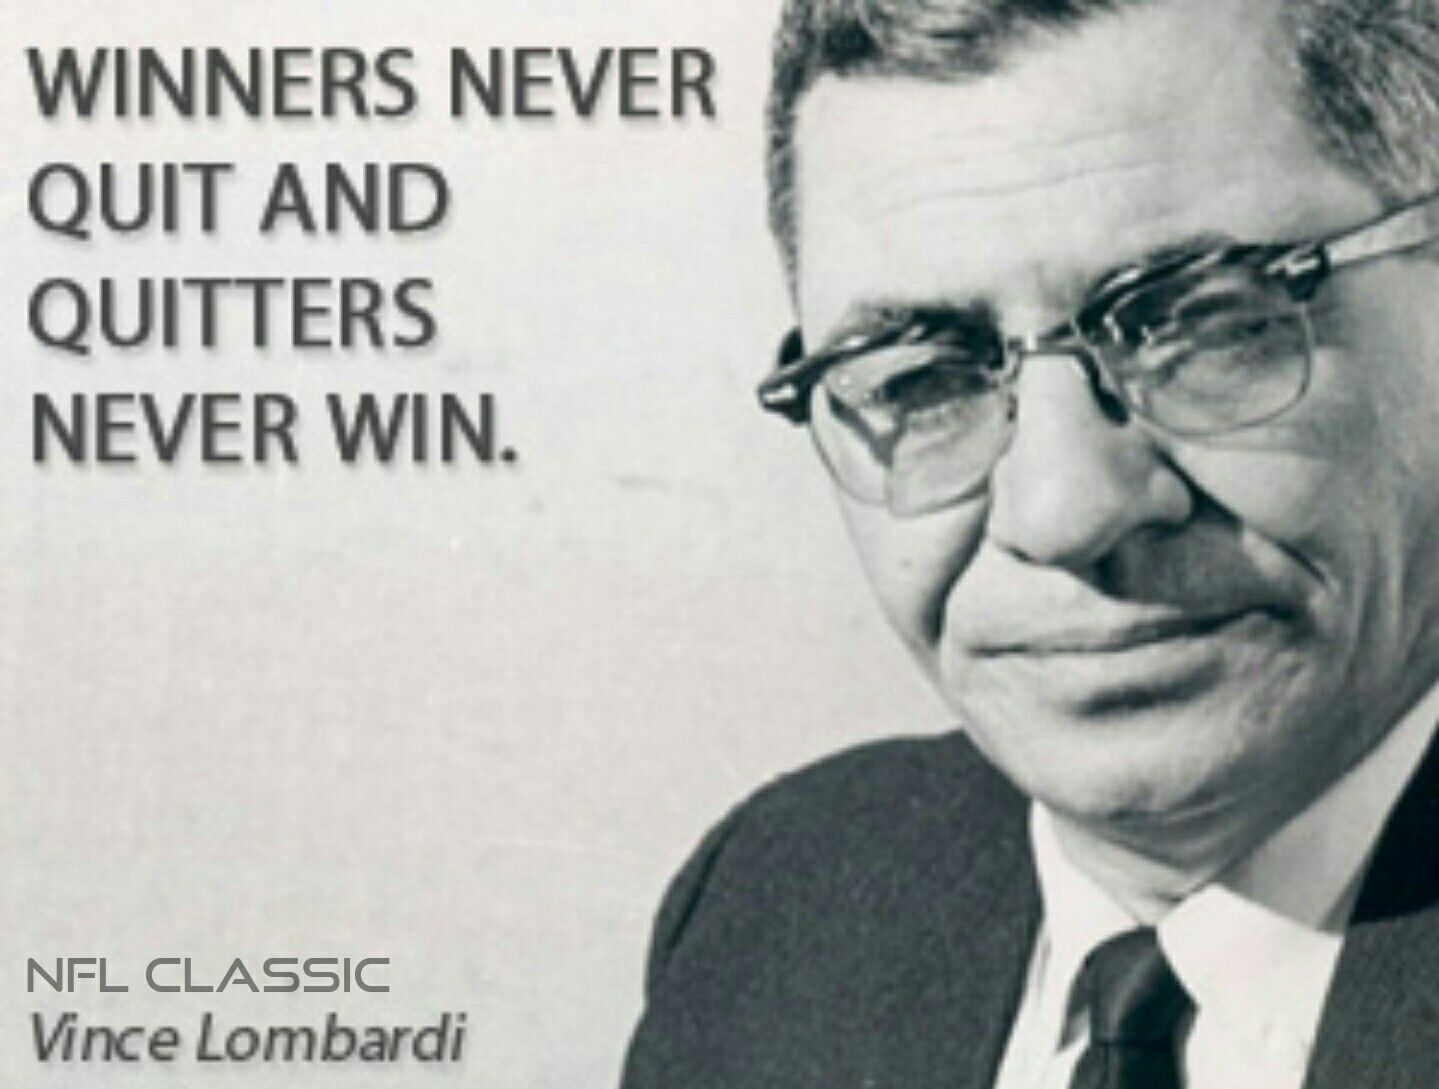 Nfl Classic Presents A Vince Lombardi Quote Www Nflclassic Com Vince Lombardi Quotes Lombardi Quotes Vince Lombardi